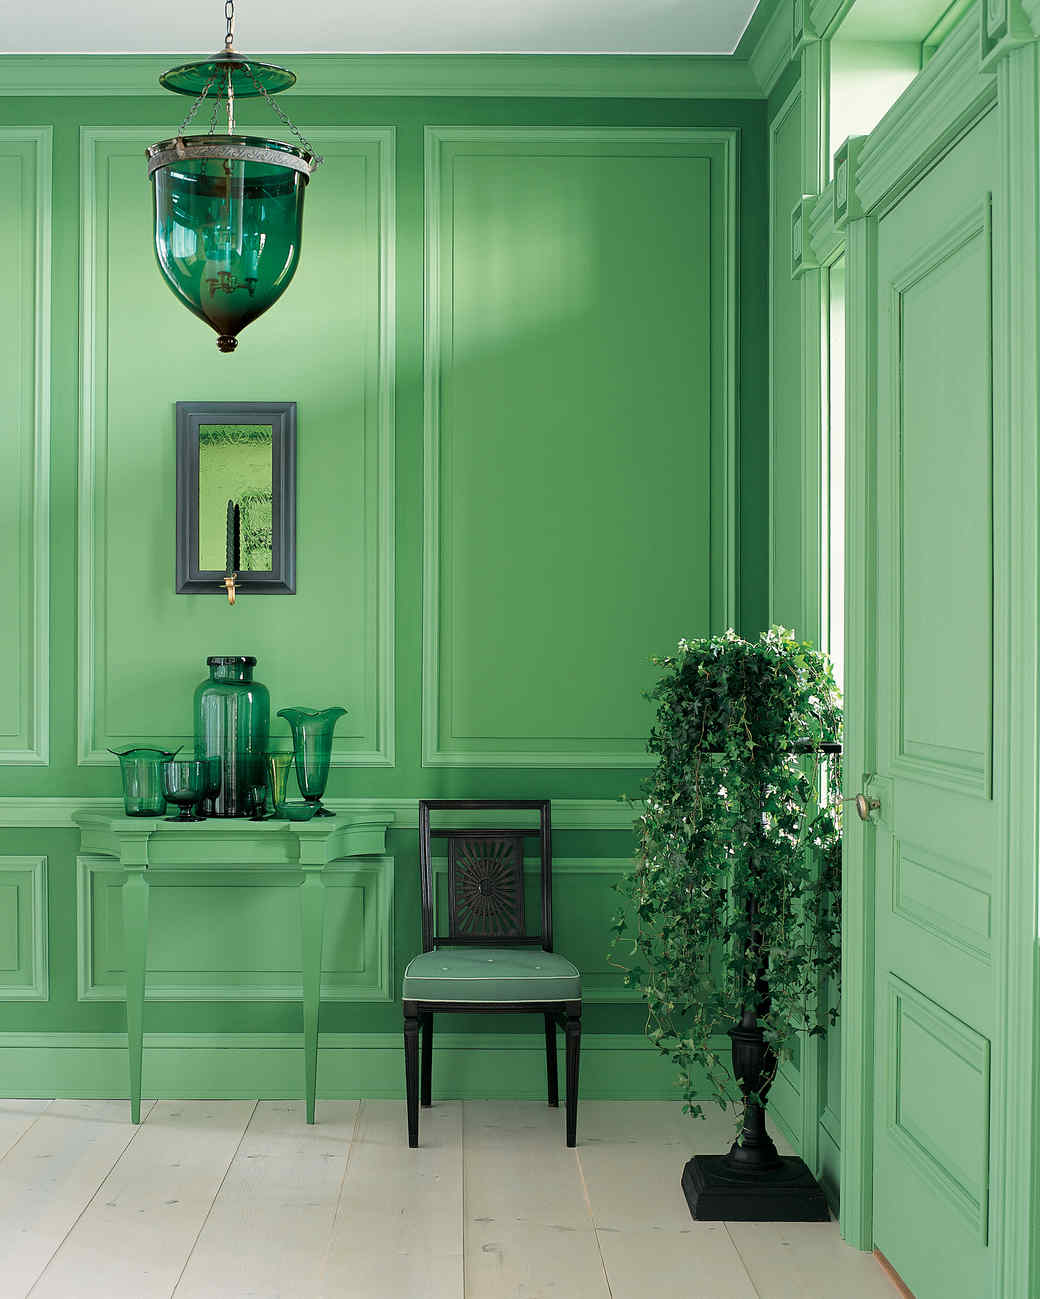 The tricks of home comfort: what color is combined with green